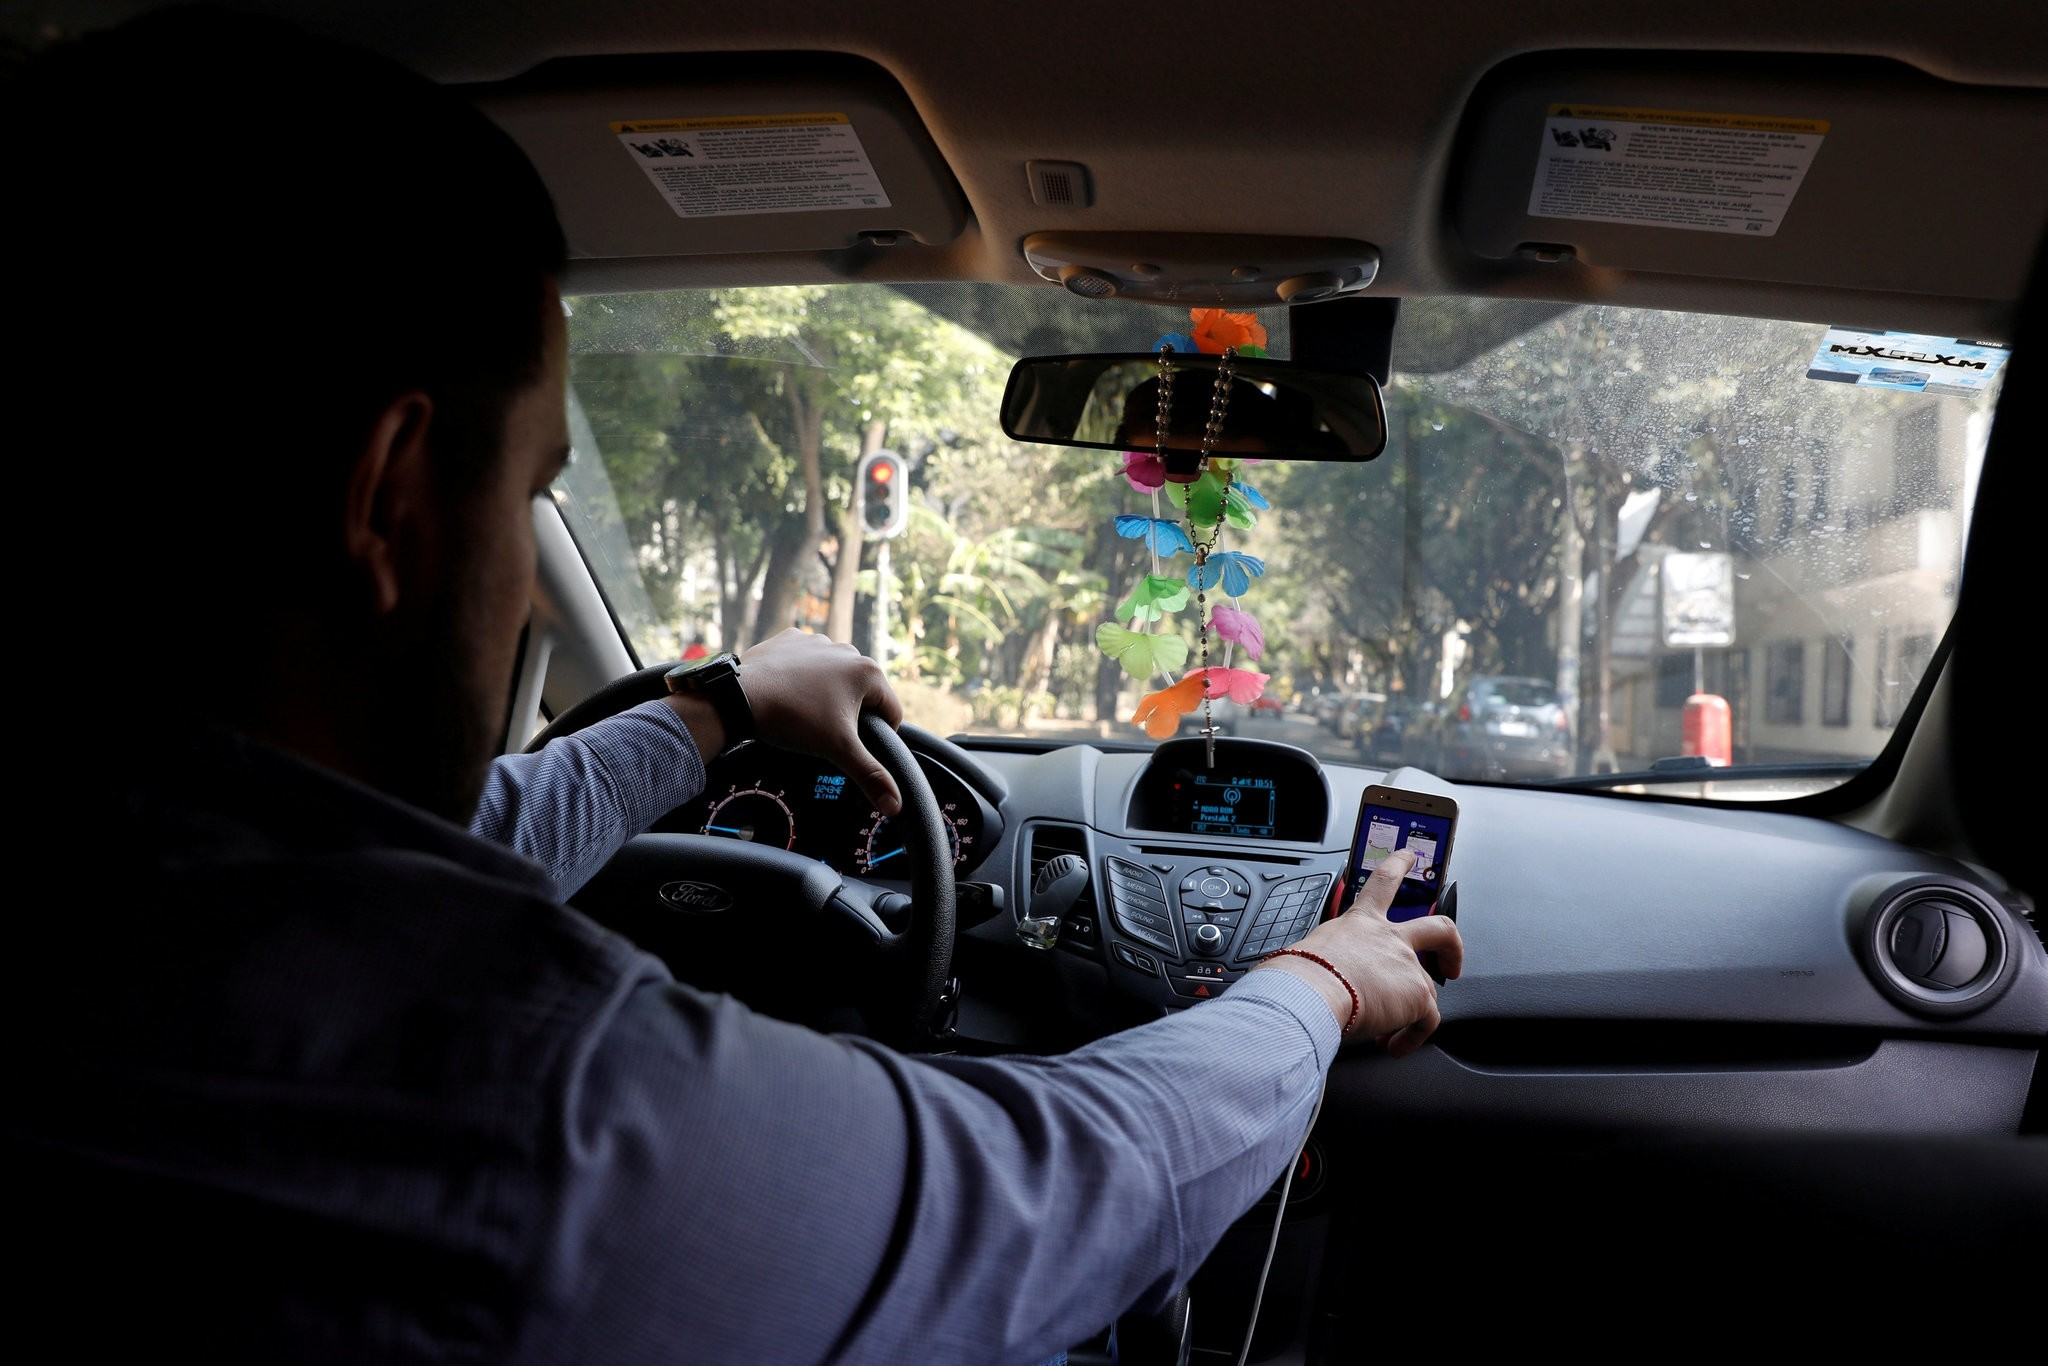 An Uber driver checks the route on a mobile phone inside his car in Mexico City, Mexico February 6, 2018. Picture taken on February 6, 2018. (REUTERS Photo)